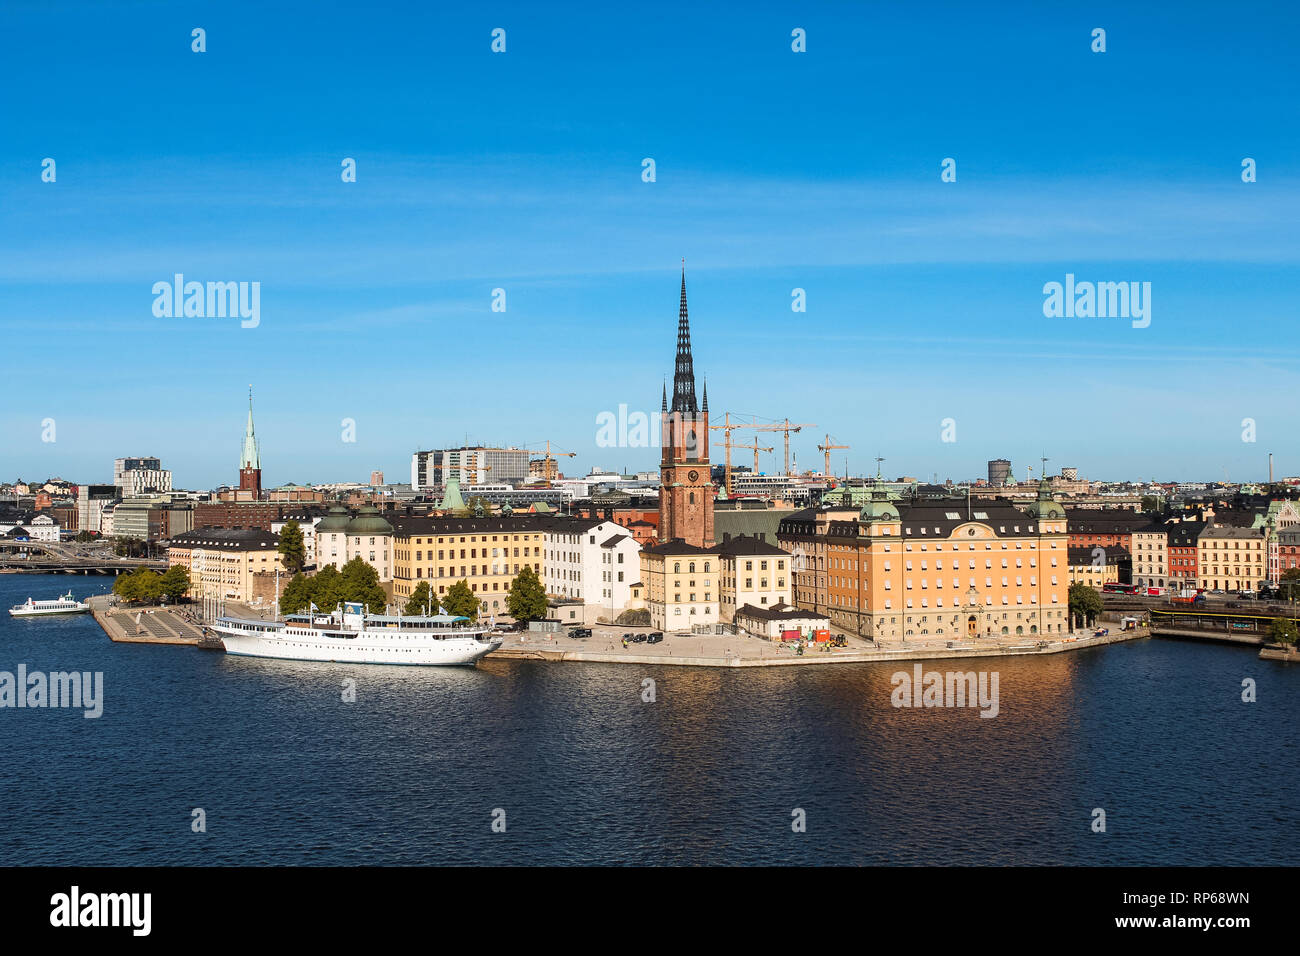 View onto Gamla Stan with Riddarholmskyrkan and a white large ship as seen from Södermalm during summer (Stockholm, Sweden, Europe) - Stock Image